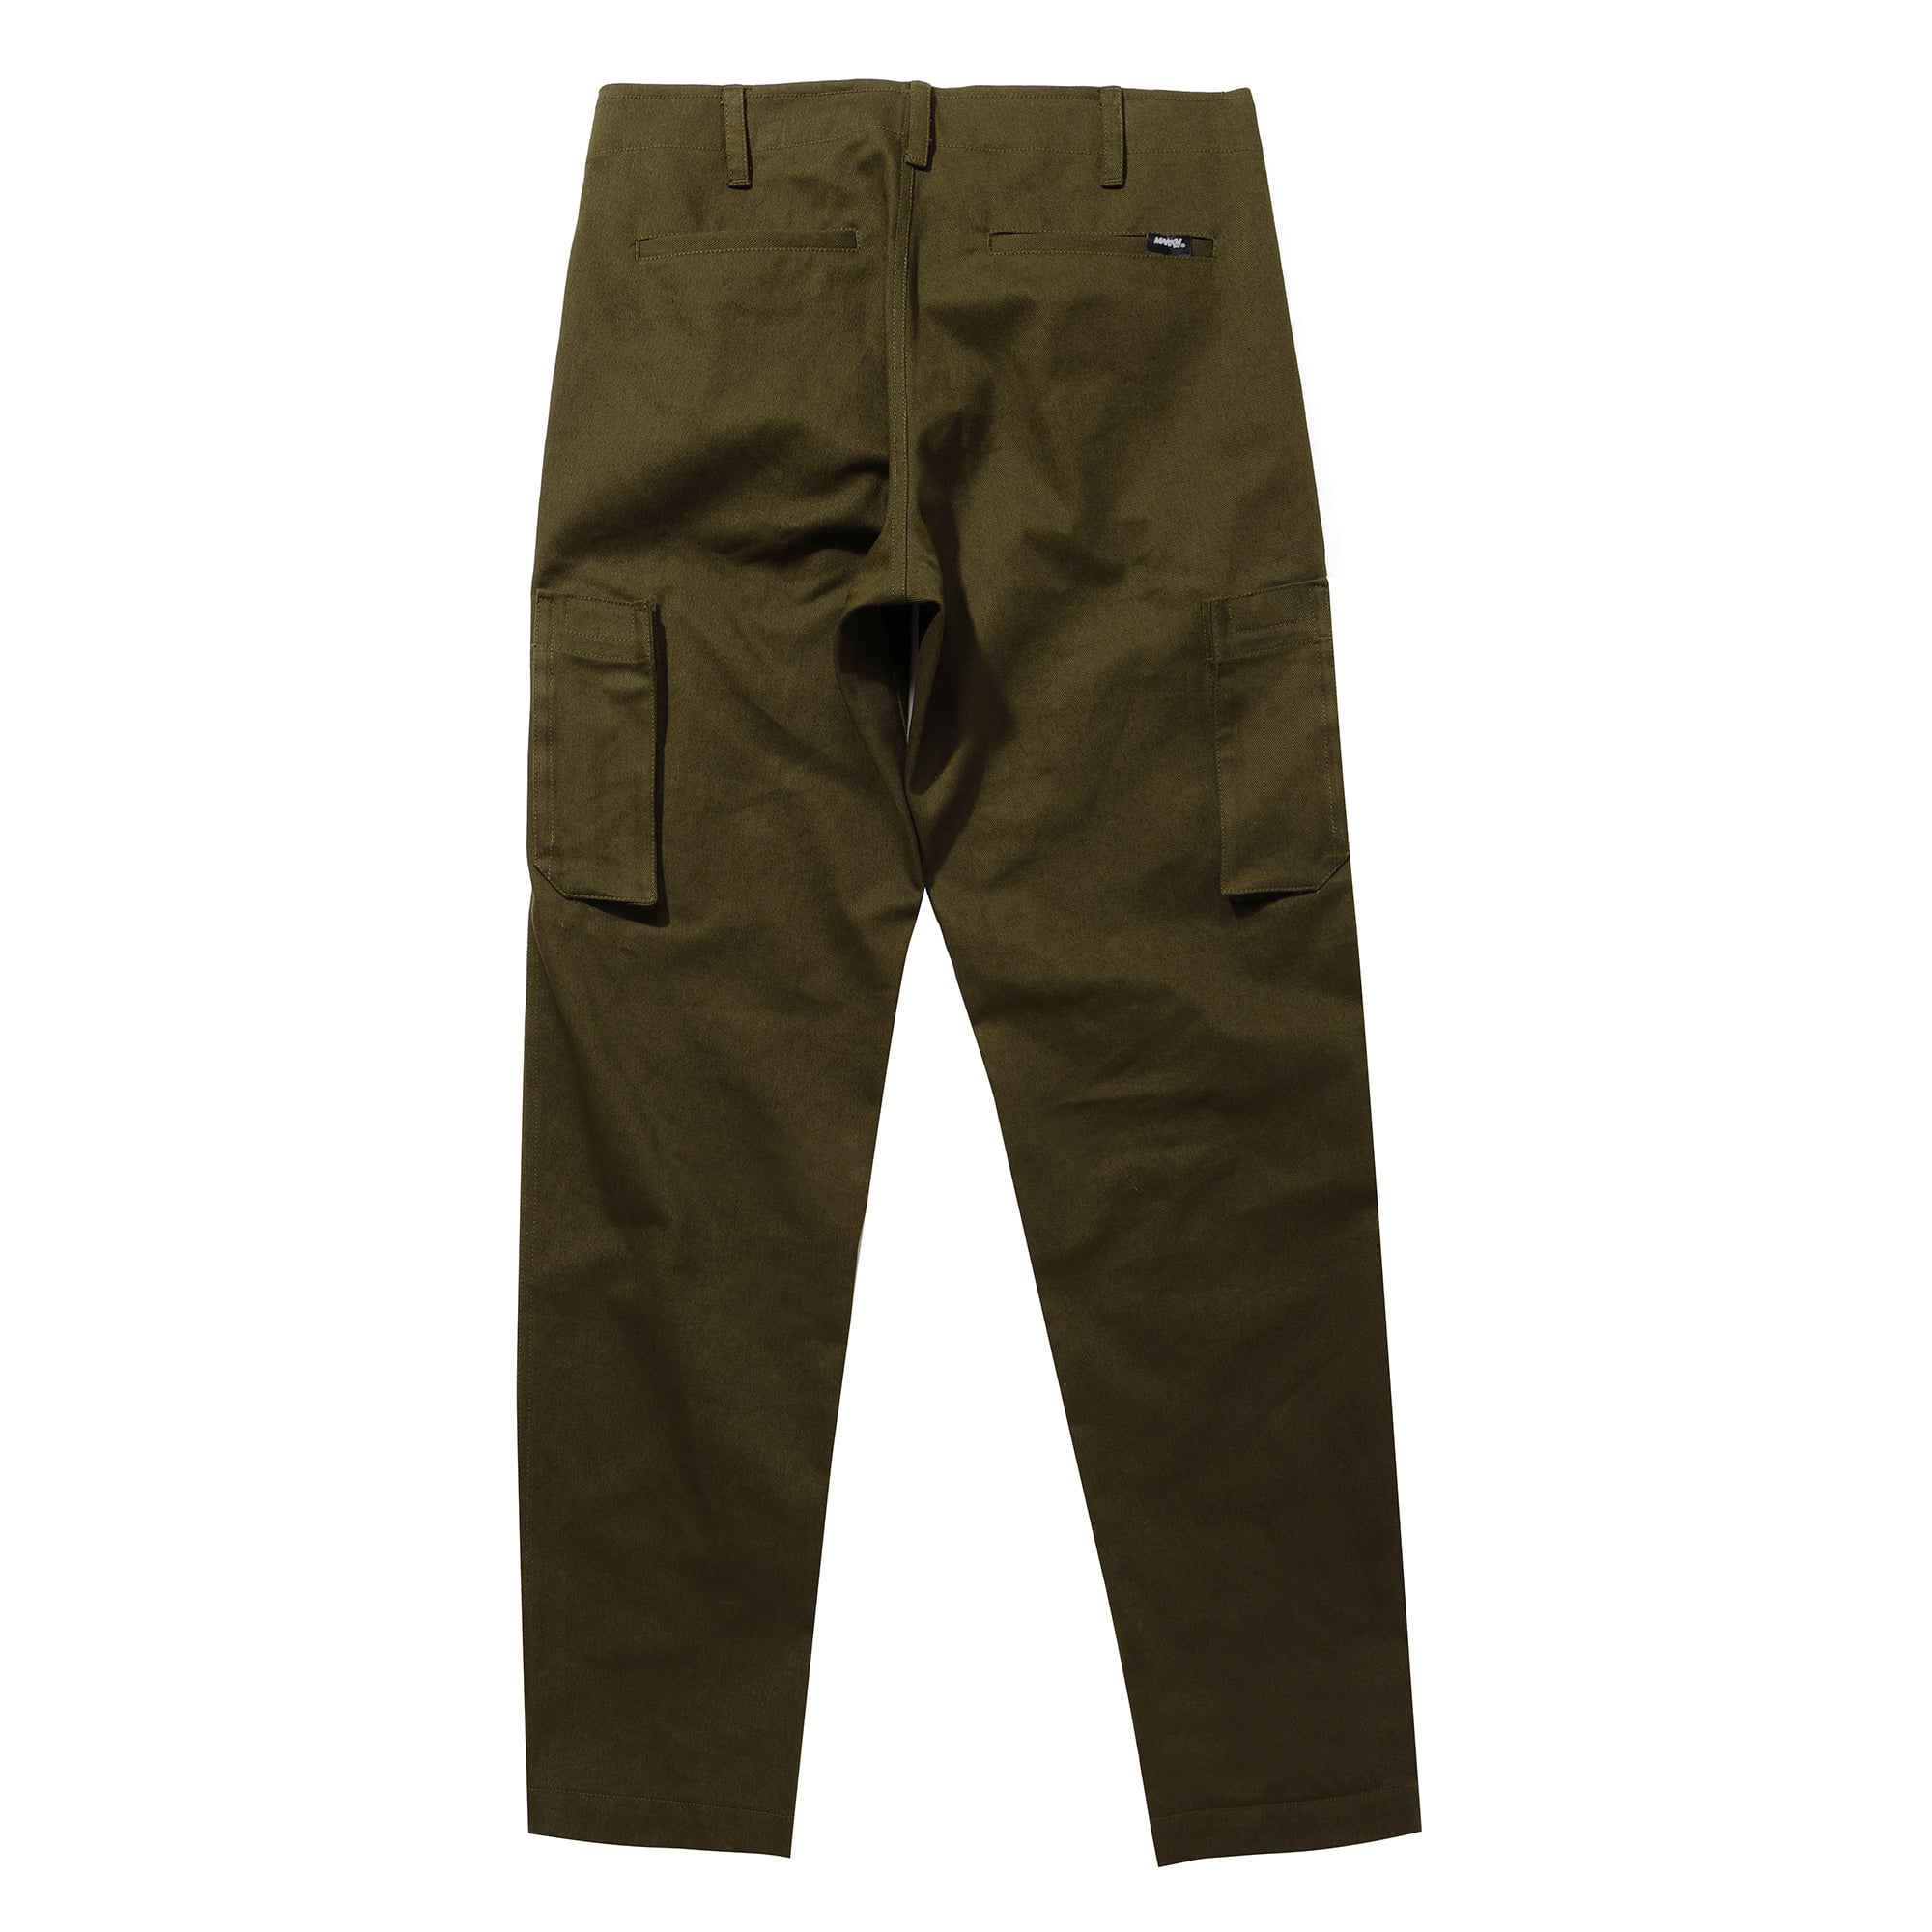 19FW MM pocket cargo pants MYFAX4513